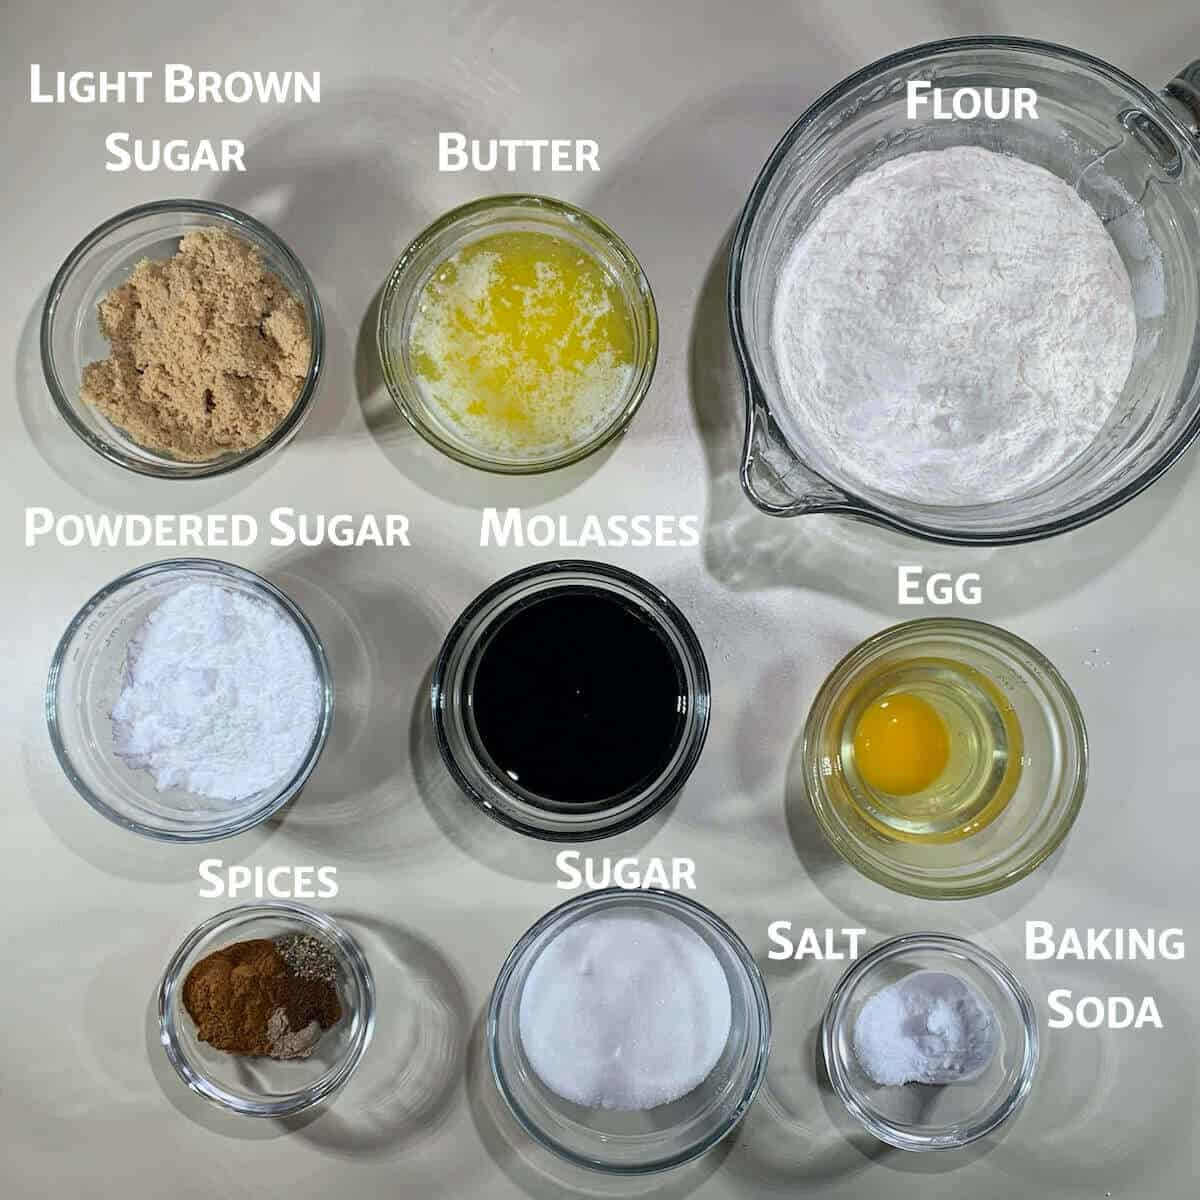 Molasses cookies ingredients in glass bowls from overhead.